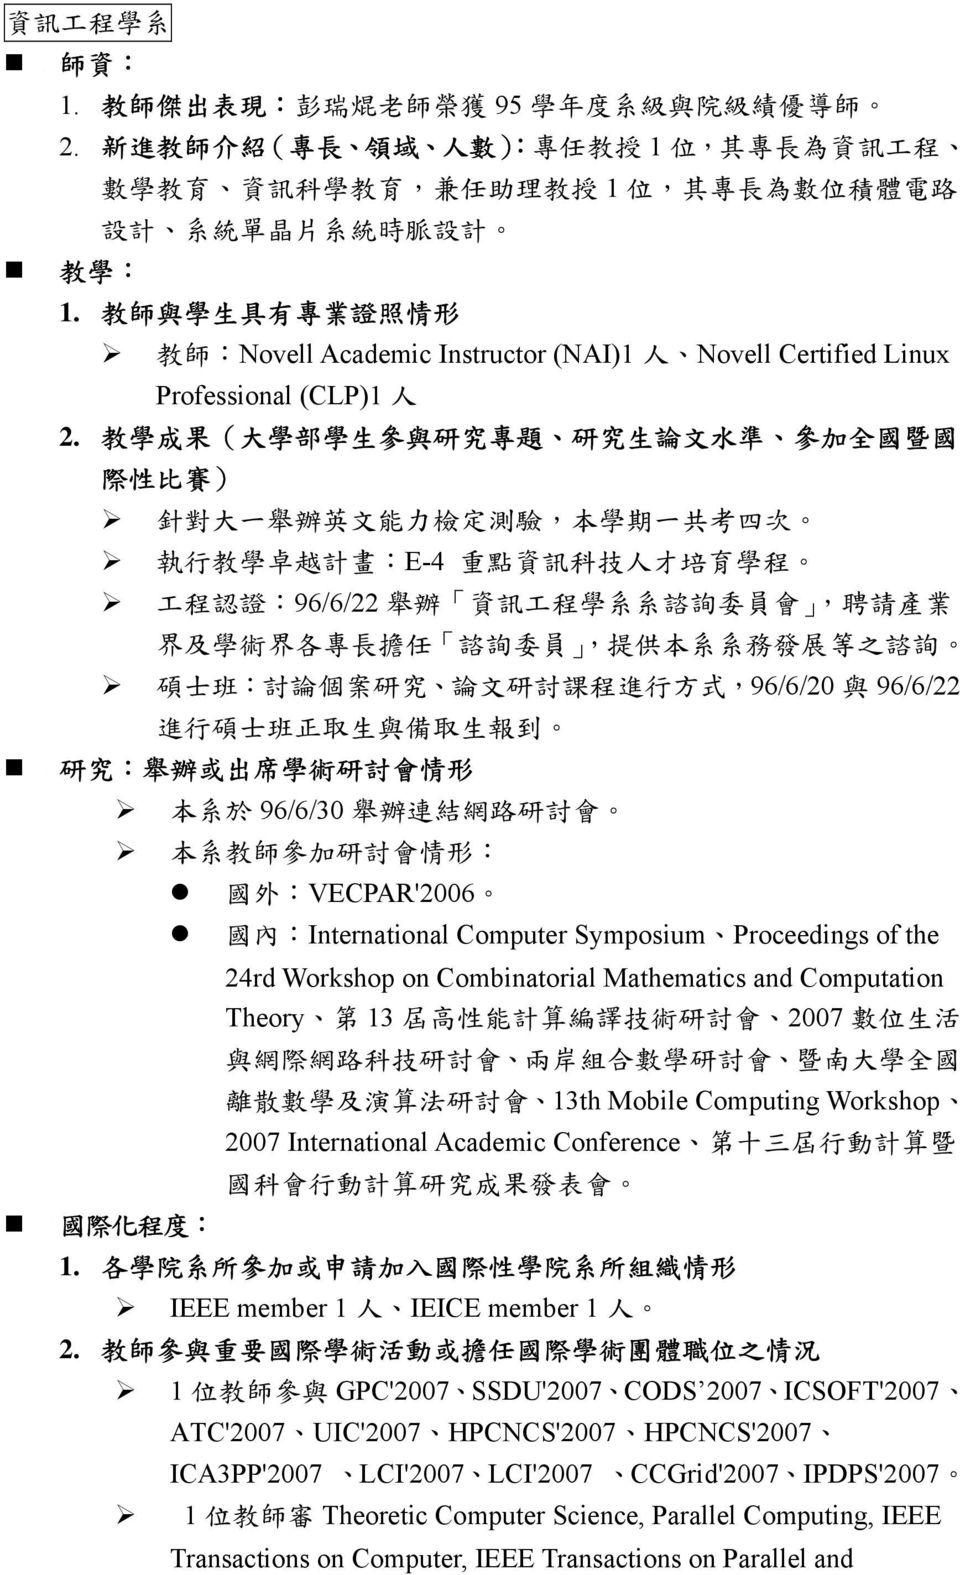 Computation Theory 13 2007 數 路 兩 數 離 數 13th Mobile Computing Workshop 2007 International Academic Conference 行 行 度 1. 參 IEEE member 1 IEICE member 1 2.